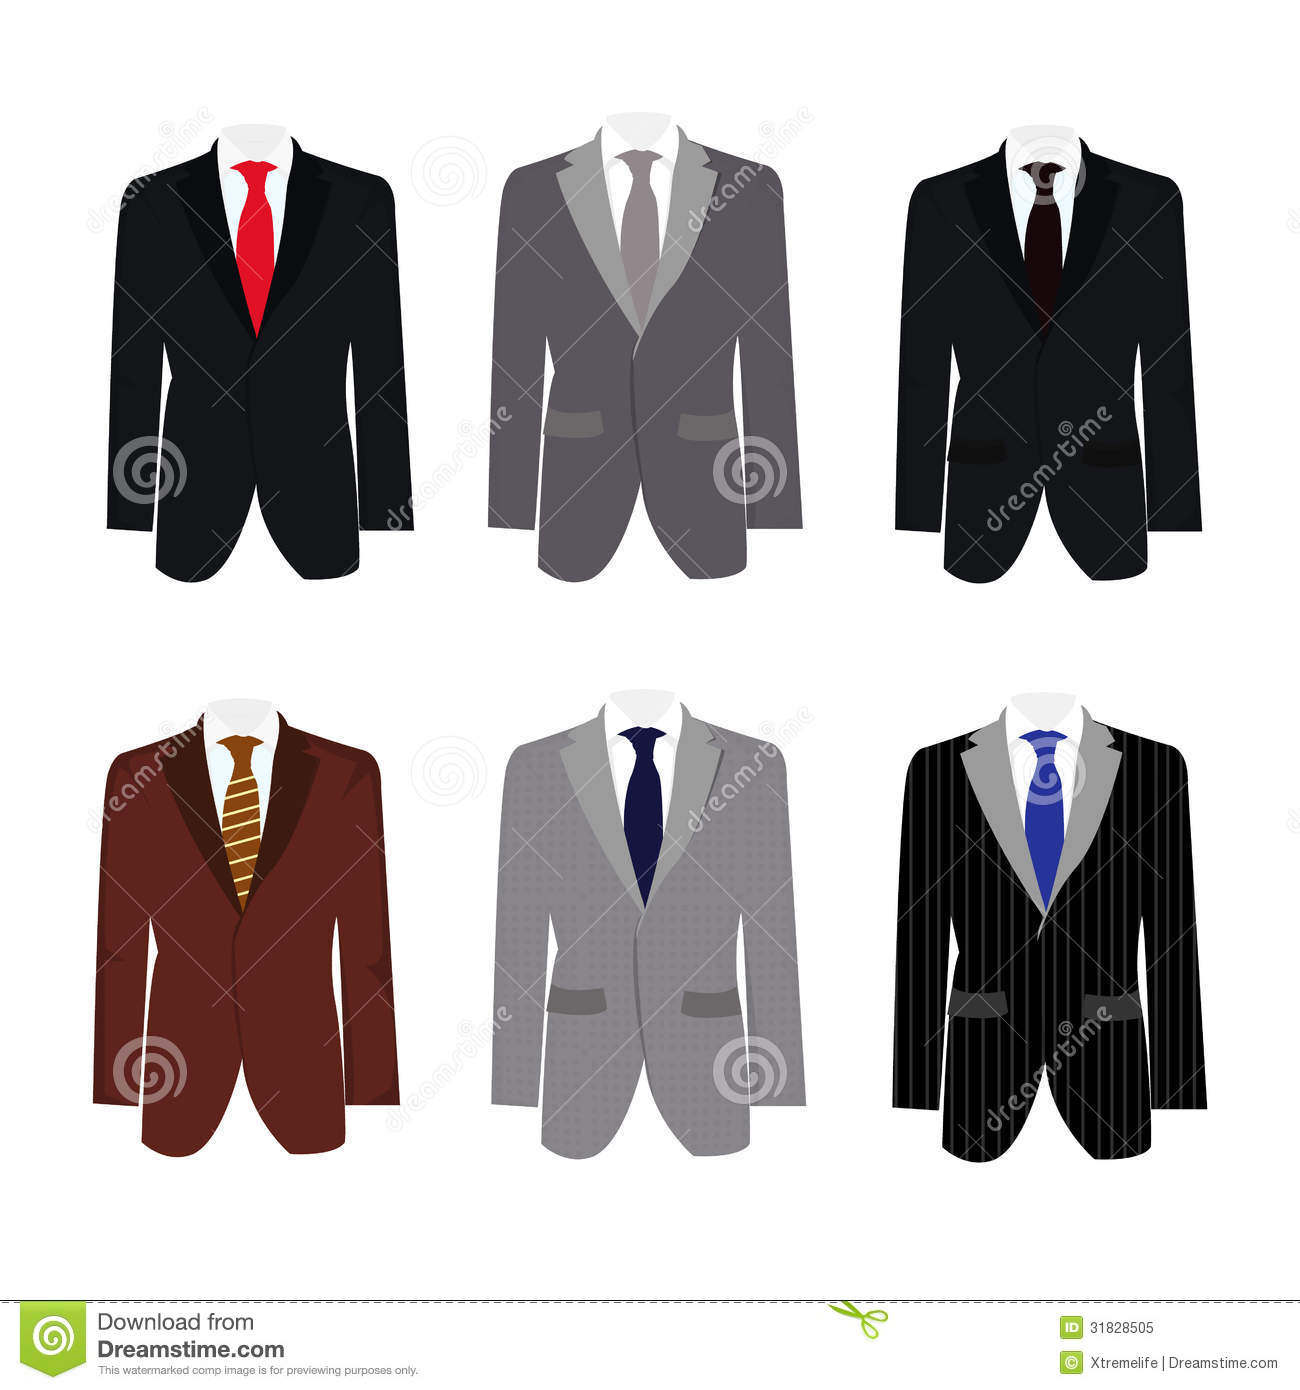 Formal attire template cheaphphosting Image collections